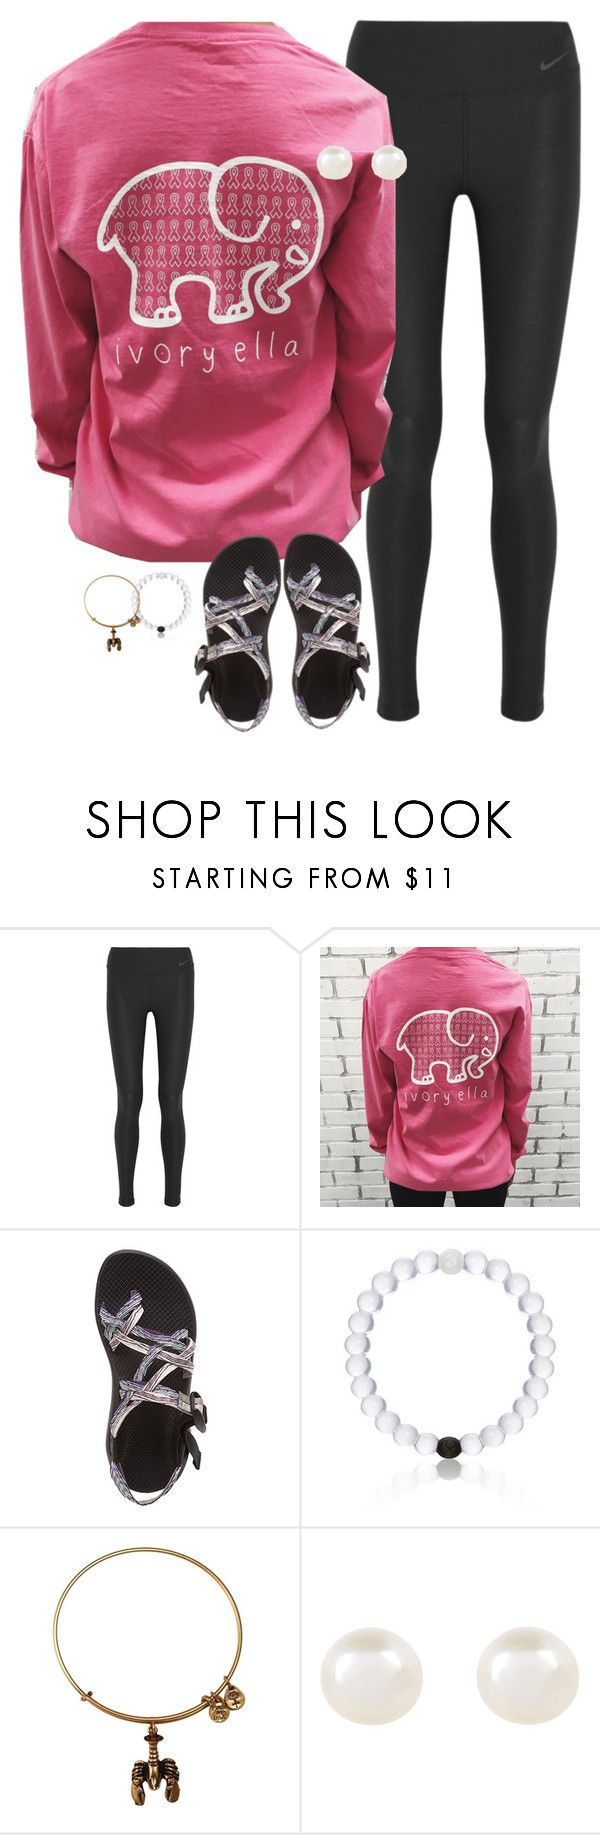 """""""Ivory Ella, Save the Elephants"""" by lizzielane33 ❤ liked on Polyvore featuring NIKE, Chaco, Everest, Alex and Ani and Accessorize"""